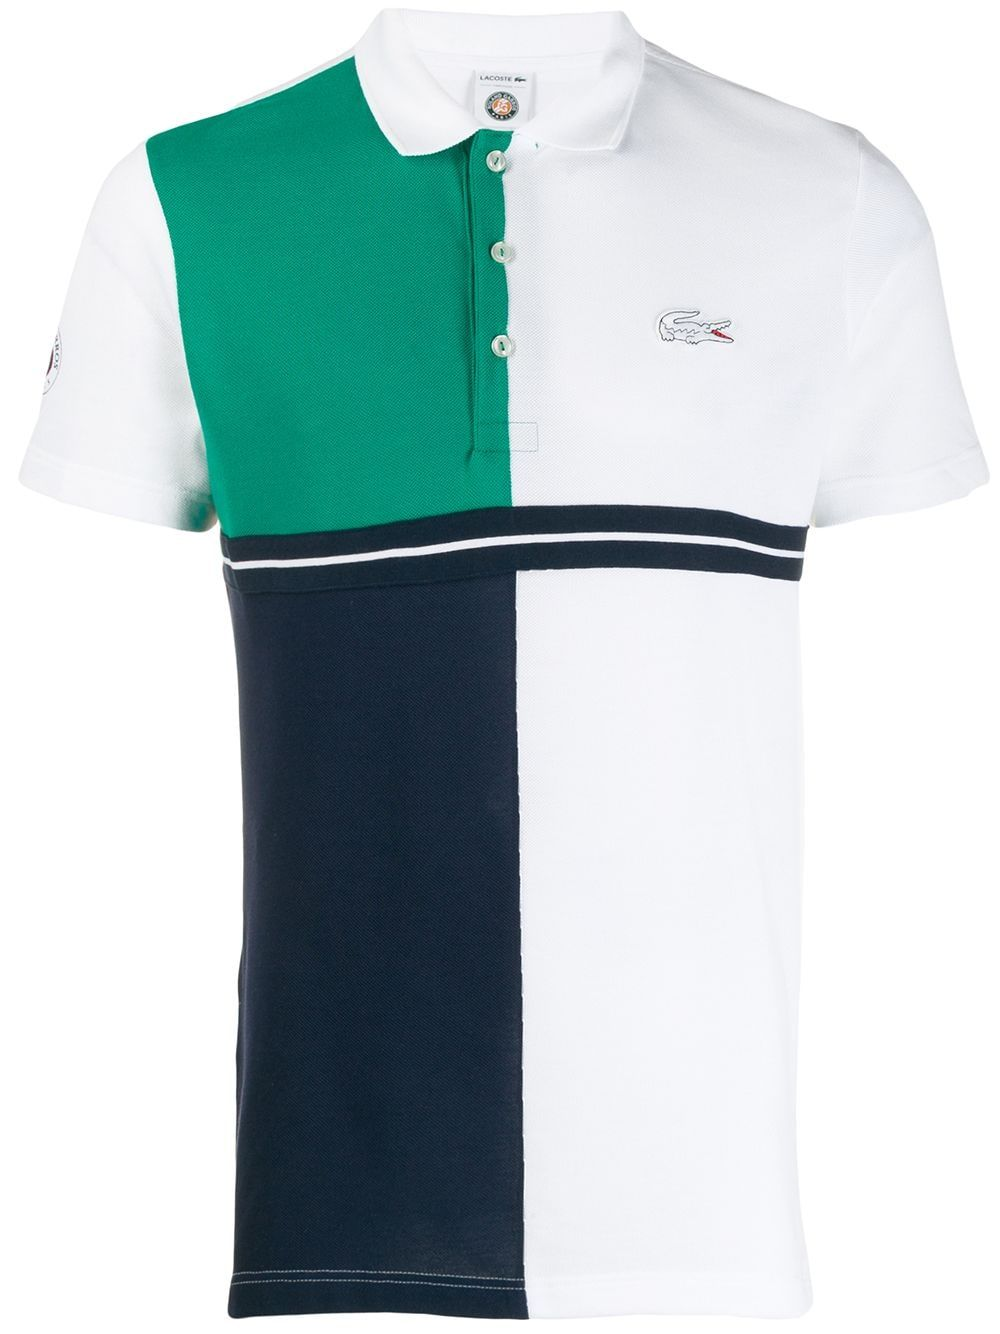 White and blue cotton polo shirt from Lacoste featuring a classic polo collar, contrasting panels, short sleeves and a relaxed fit.